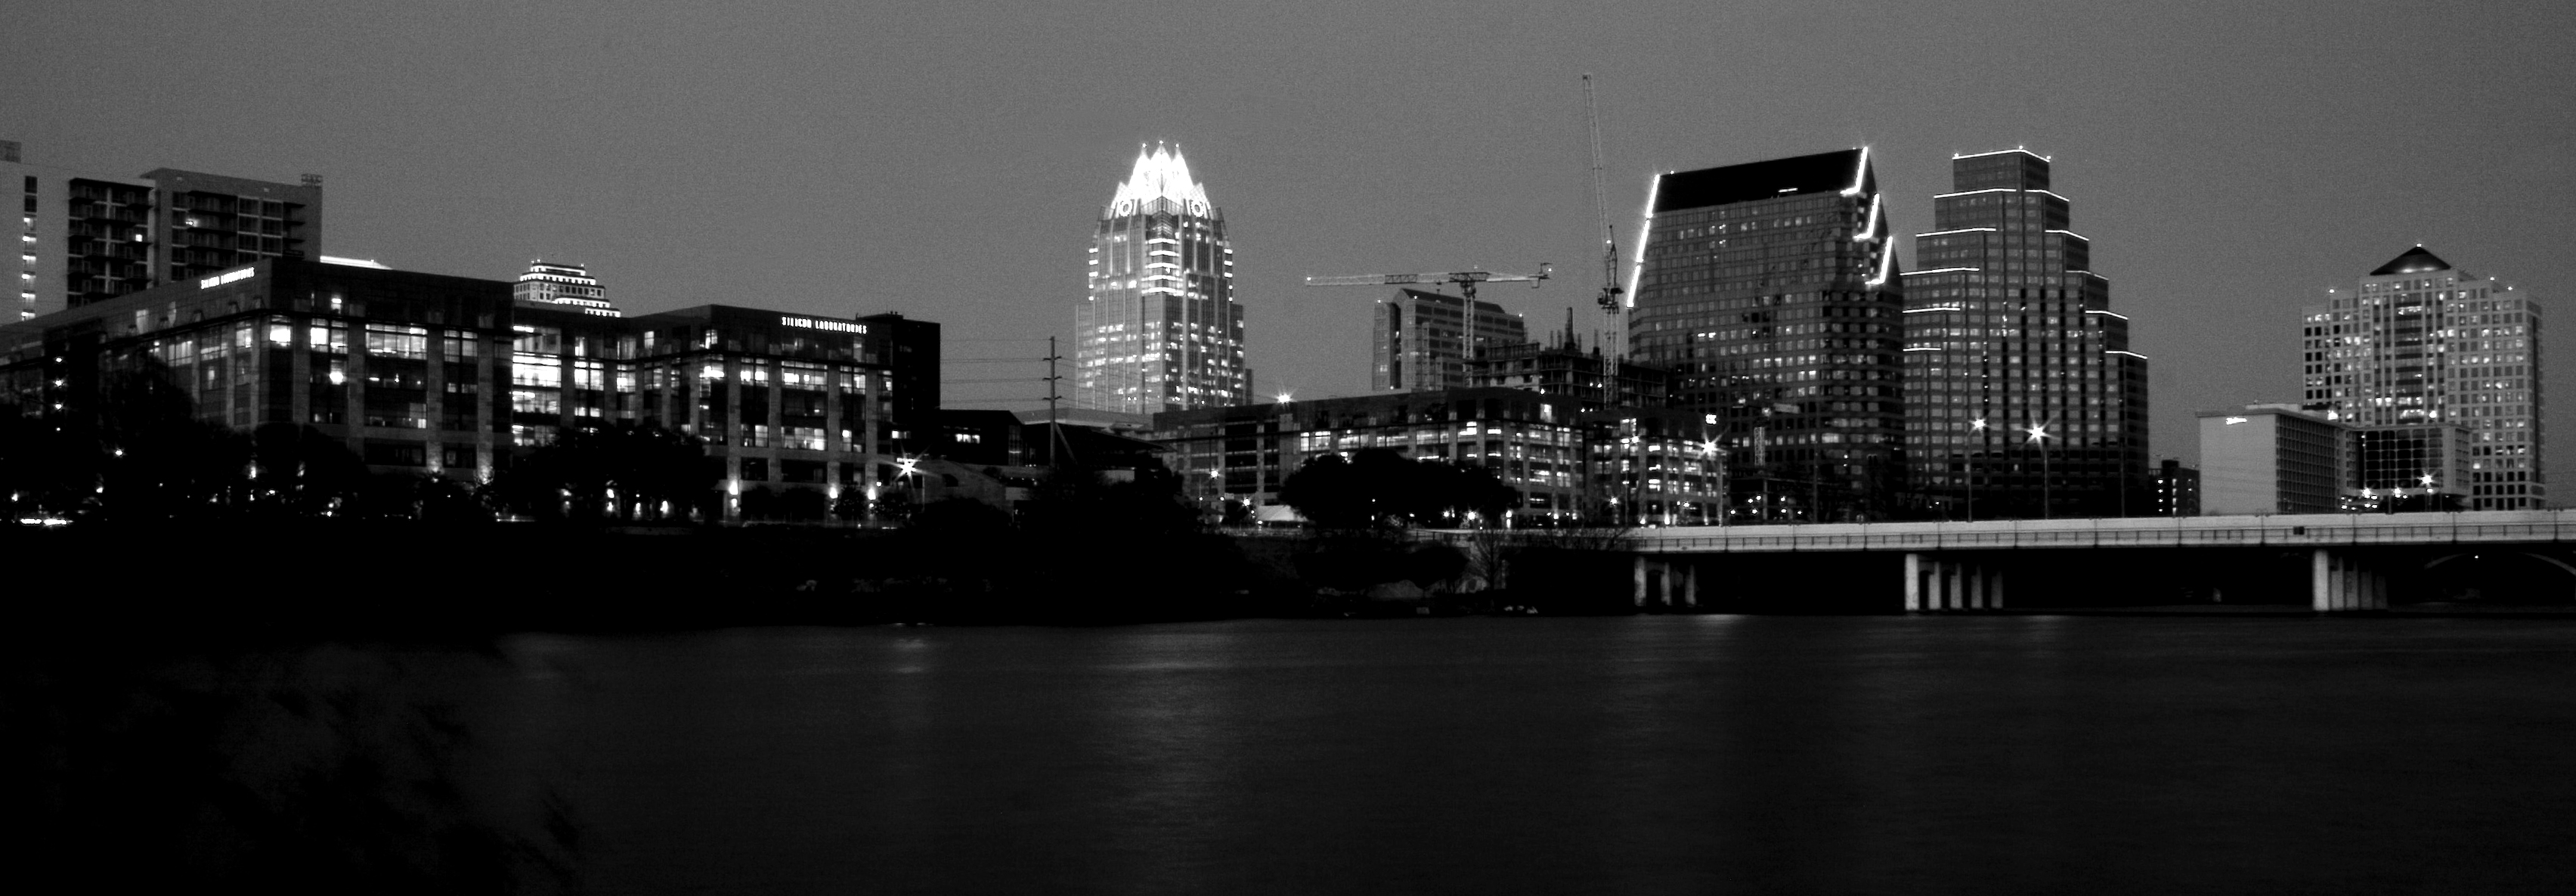 Downtown austin in black and white photo